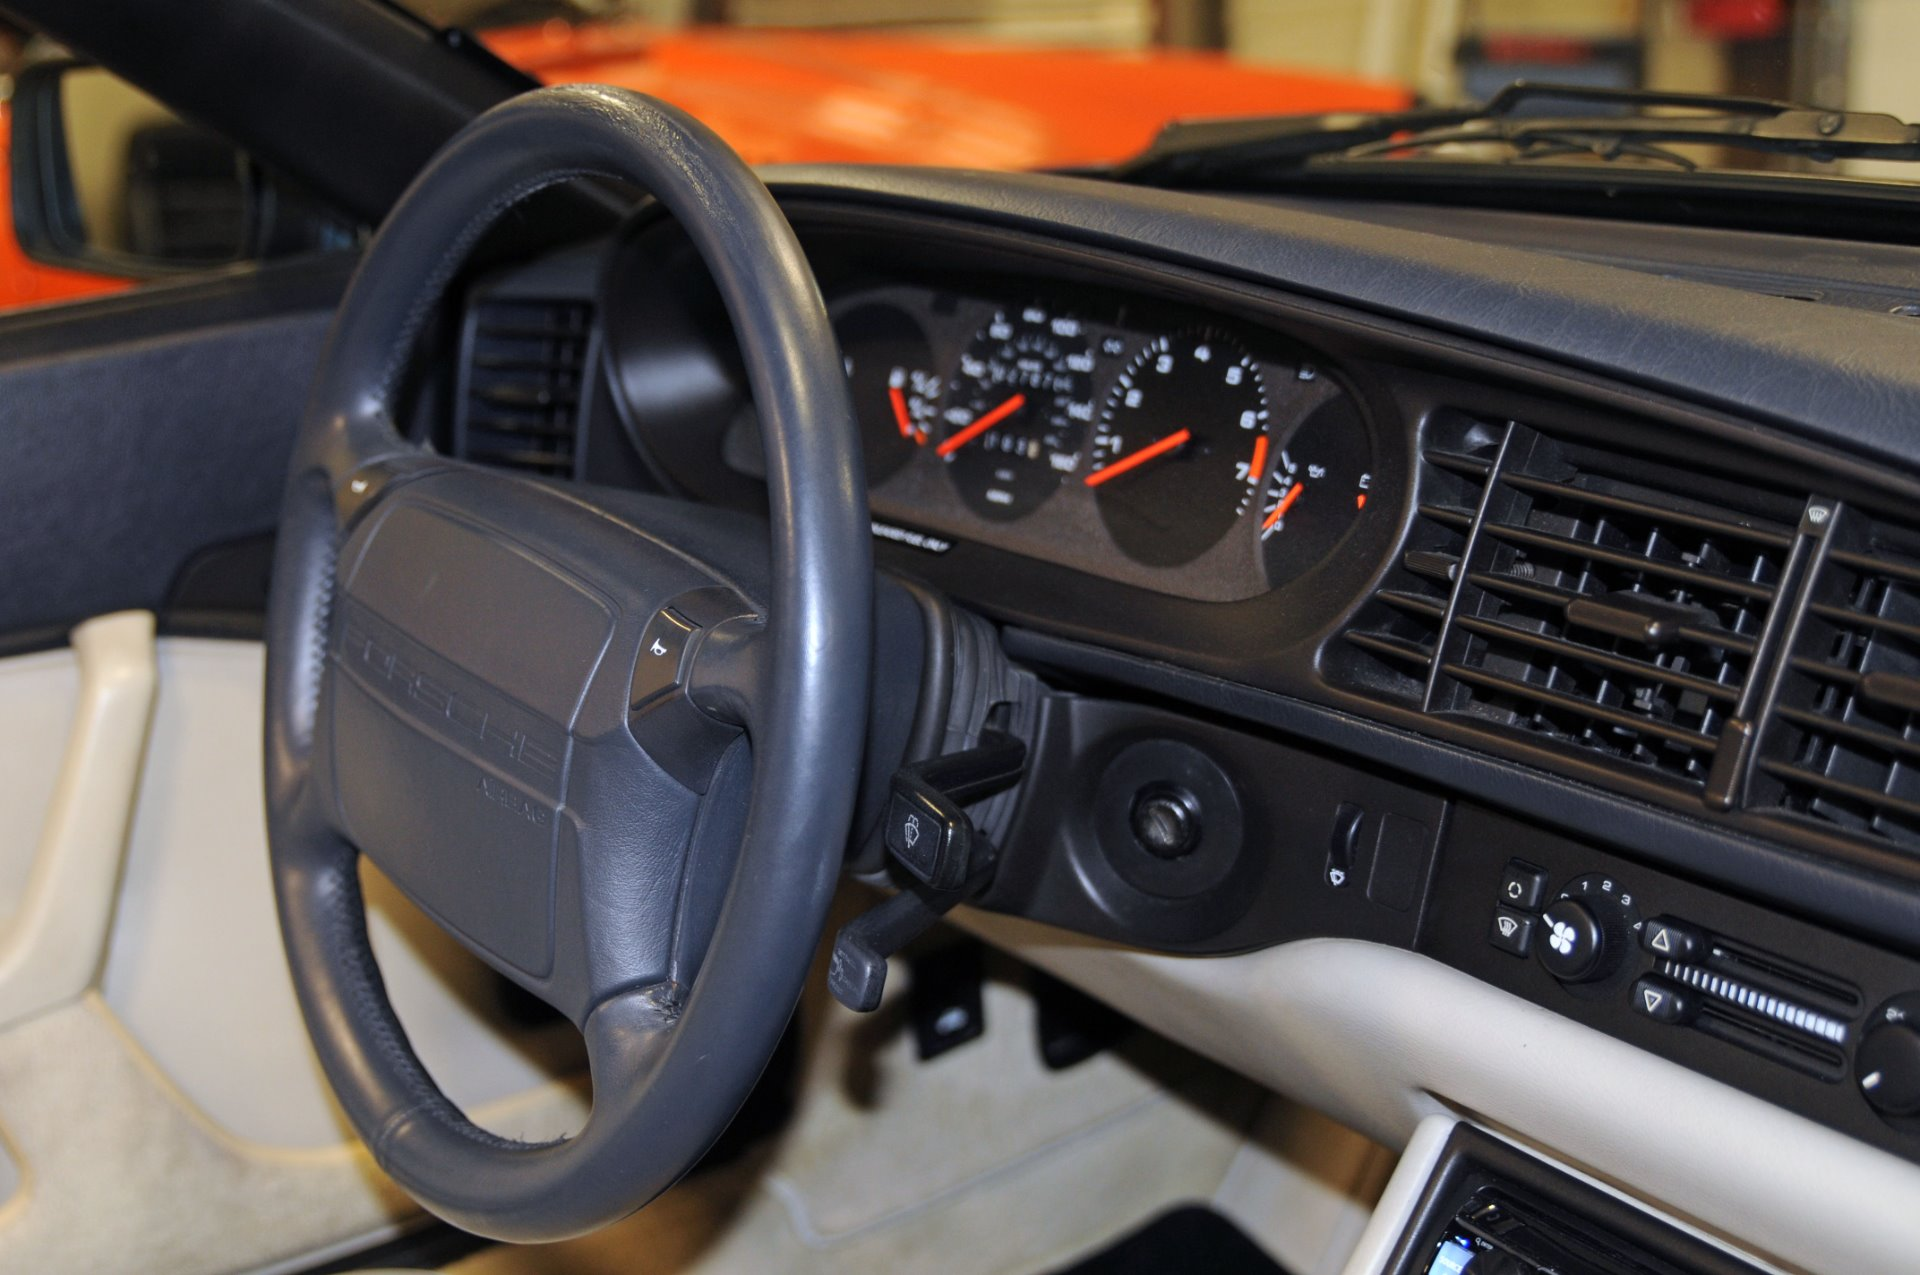 Used 1990 Porsche 944 S2 Cabriolet For Sale (Special Pricing